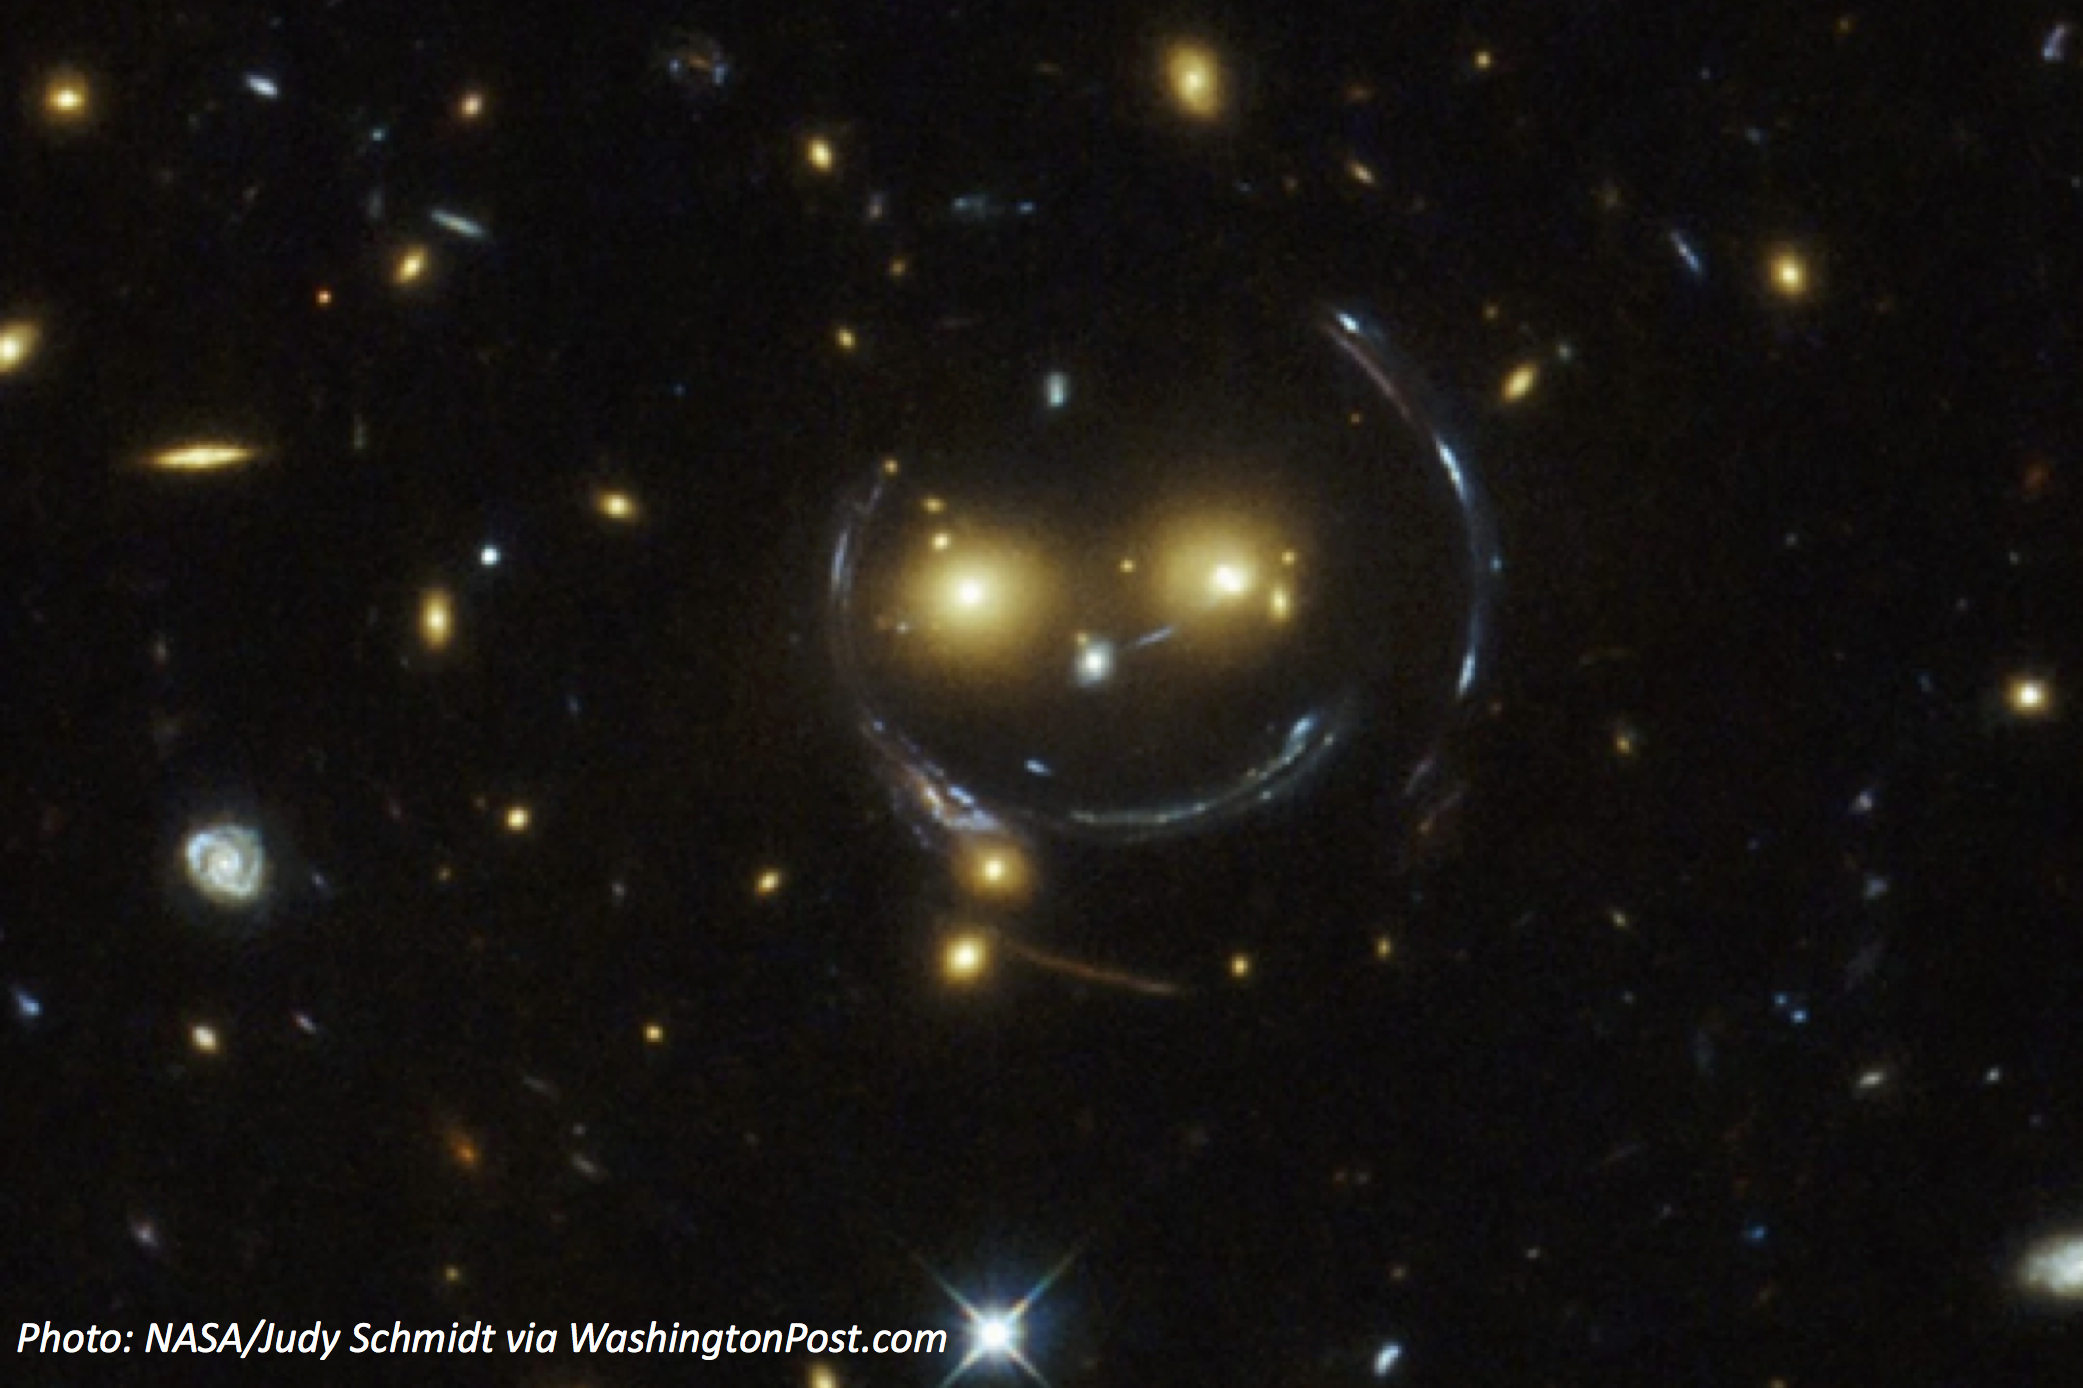 Smiley Face in Space